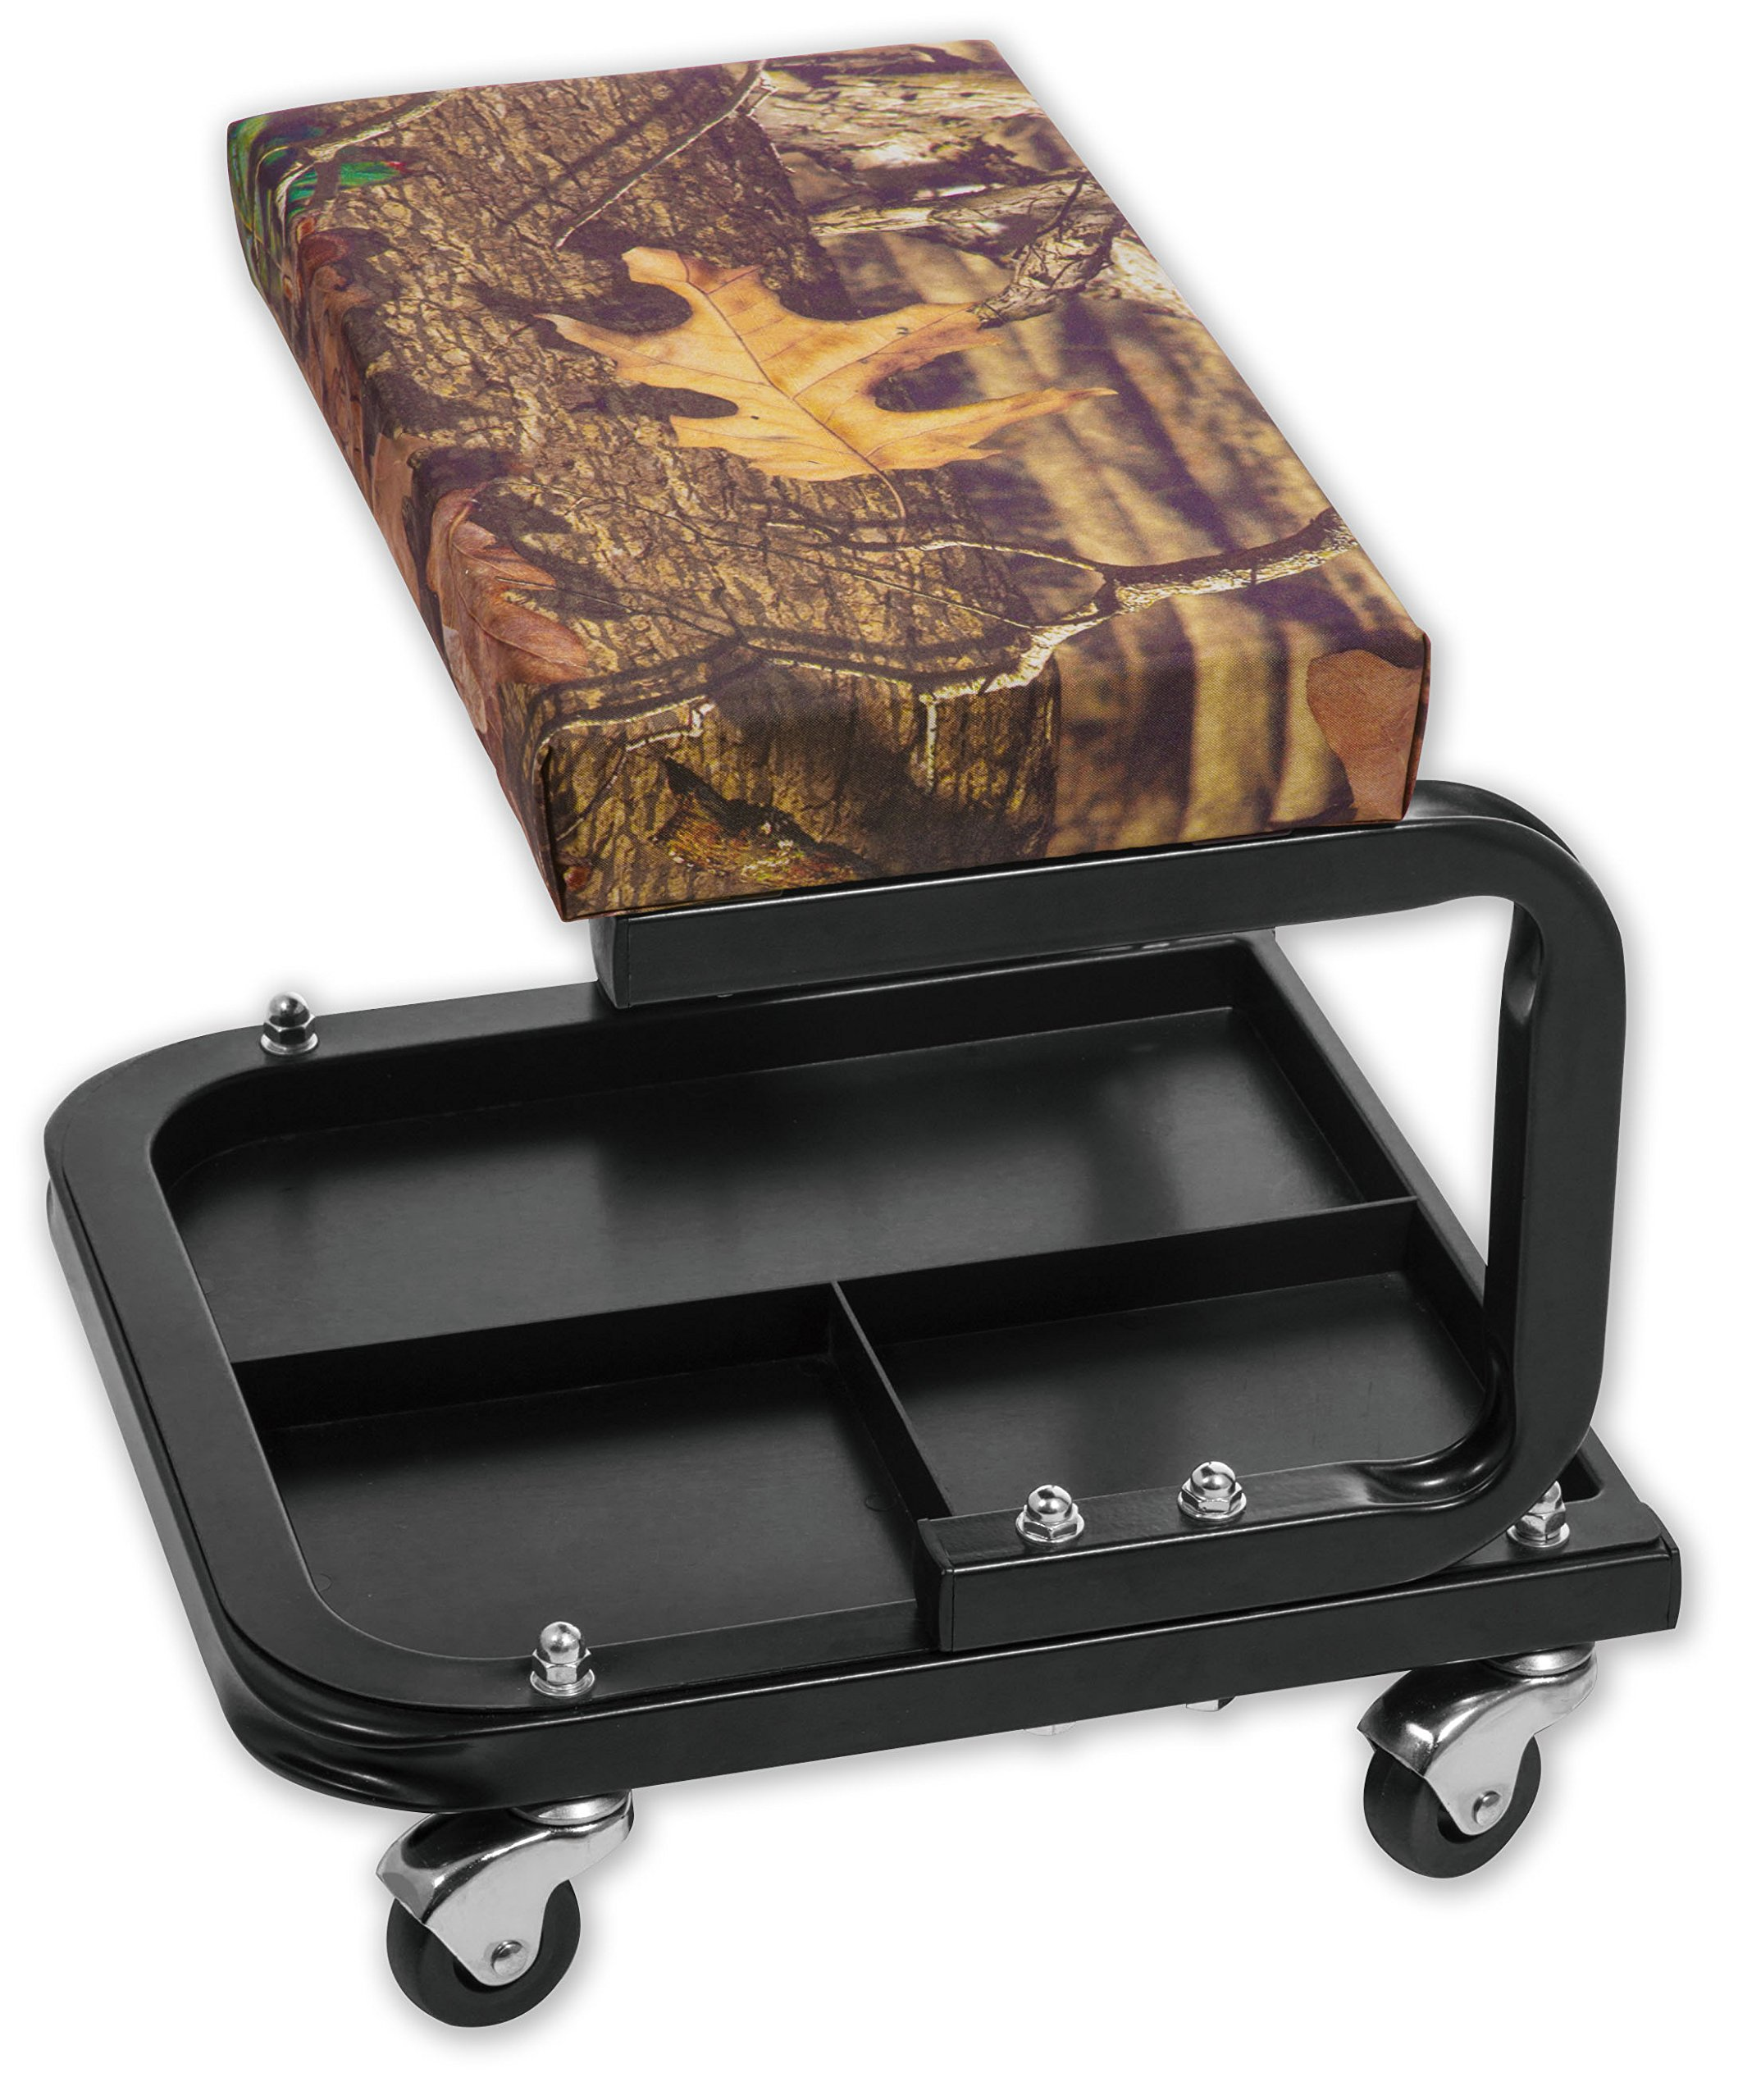 Torin Big Red Rolling Creeper Garage/Shop Seat: Padded Mechanic Stool with Tool Tray, Mossy Oak Camo